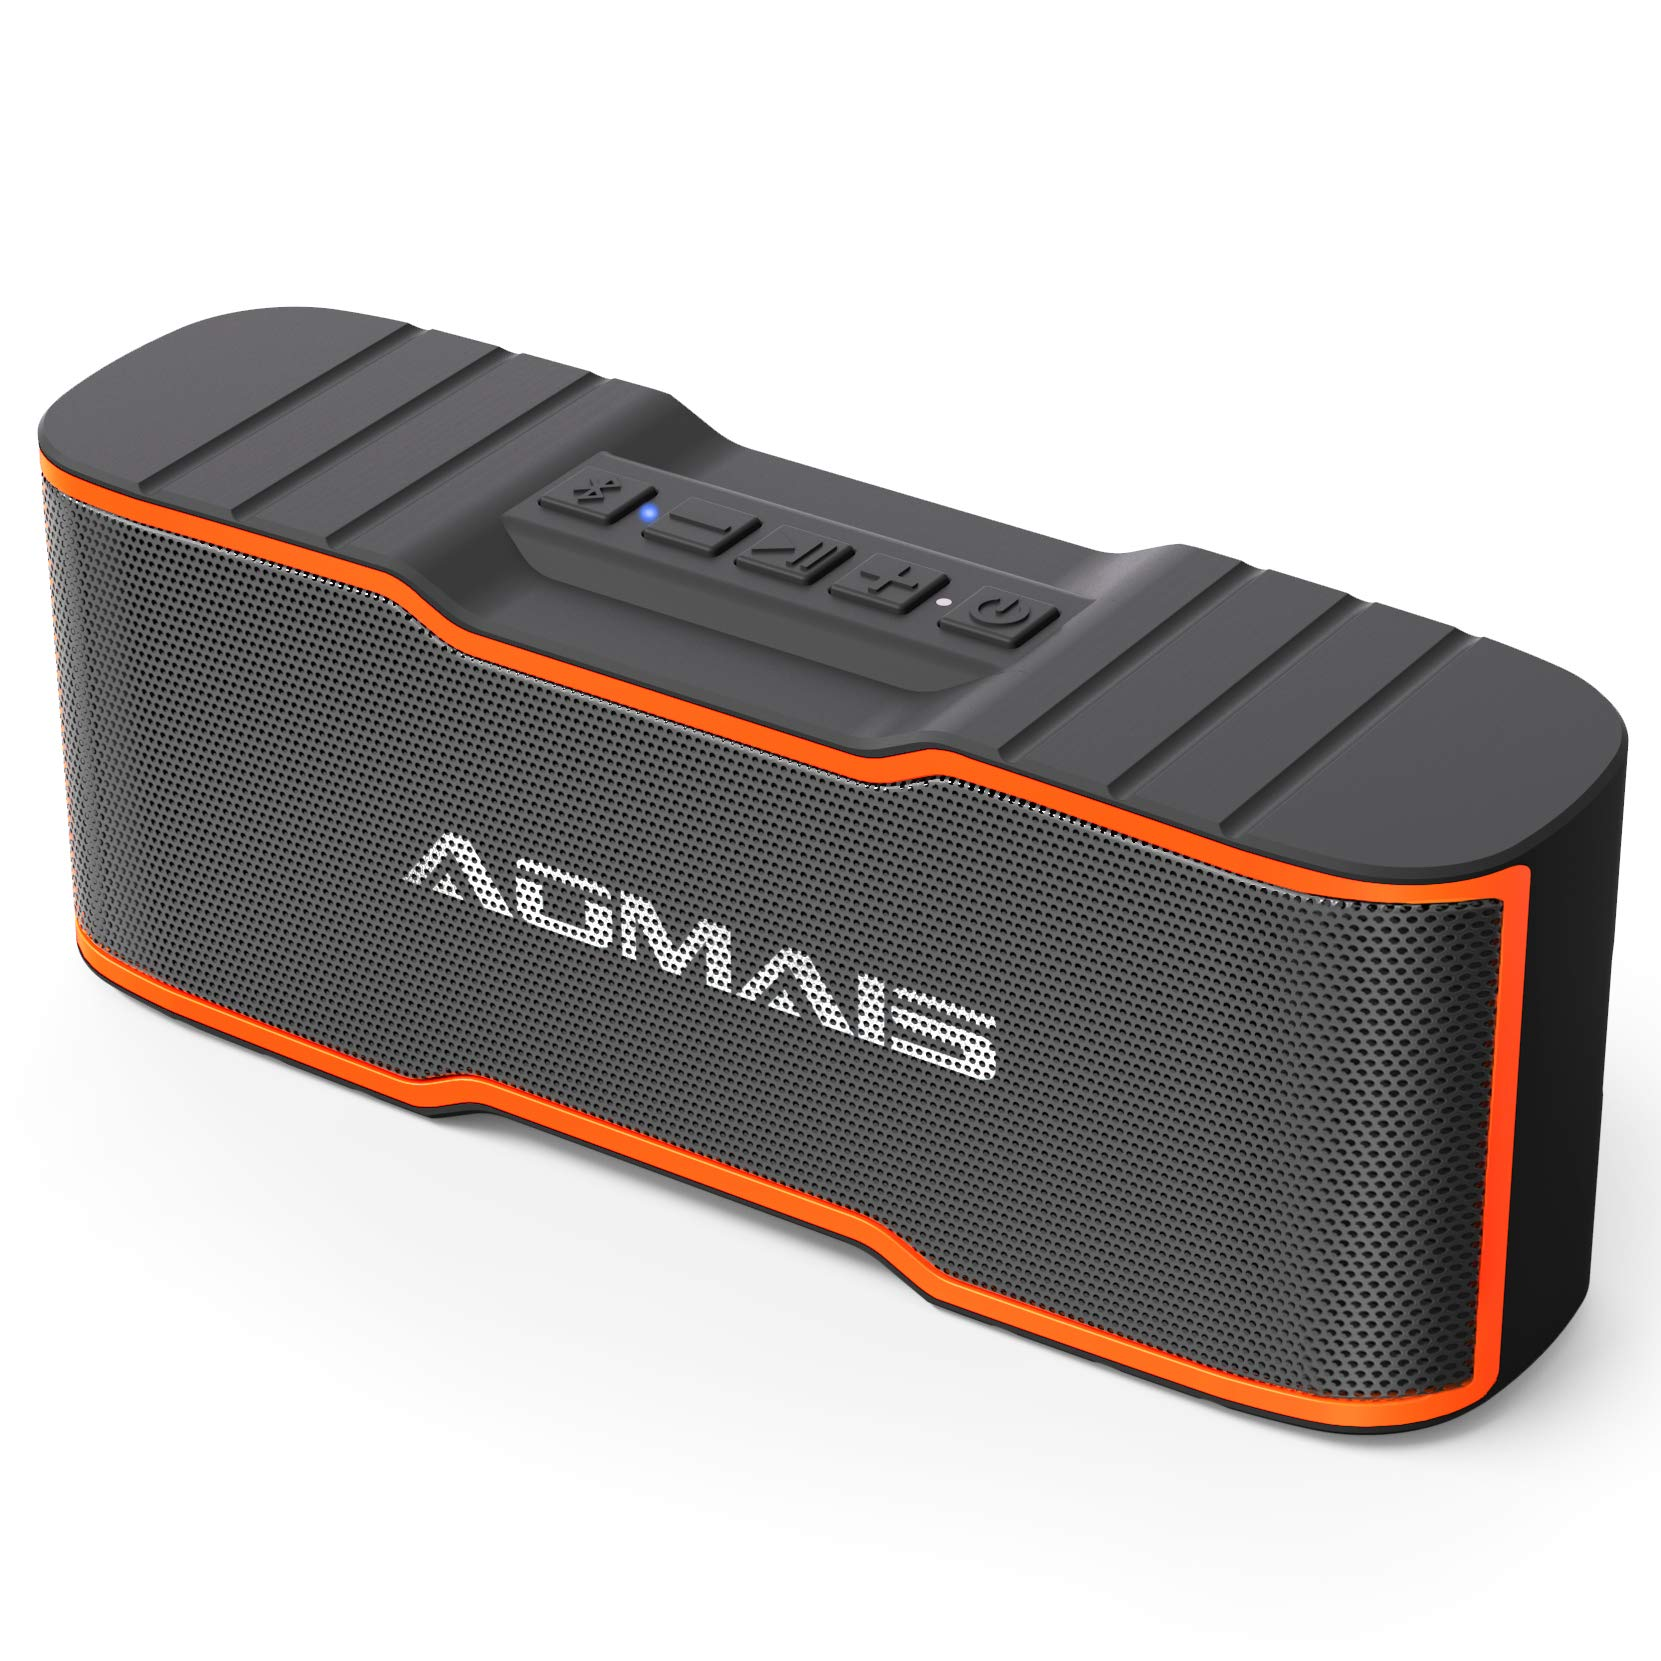 AOMAIS Sport II Mini Portable Bluetooth Speakers with 10W Superior Sound, Built-in Mic, Stereo Pairing, IPX4 Water-Resistant Wireless Speaker for iPhone, iPod, iPad, Tablets, Echo Dot (Orange)